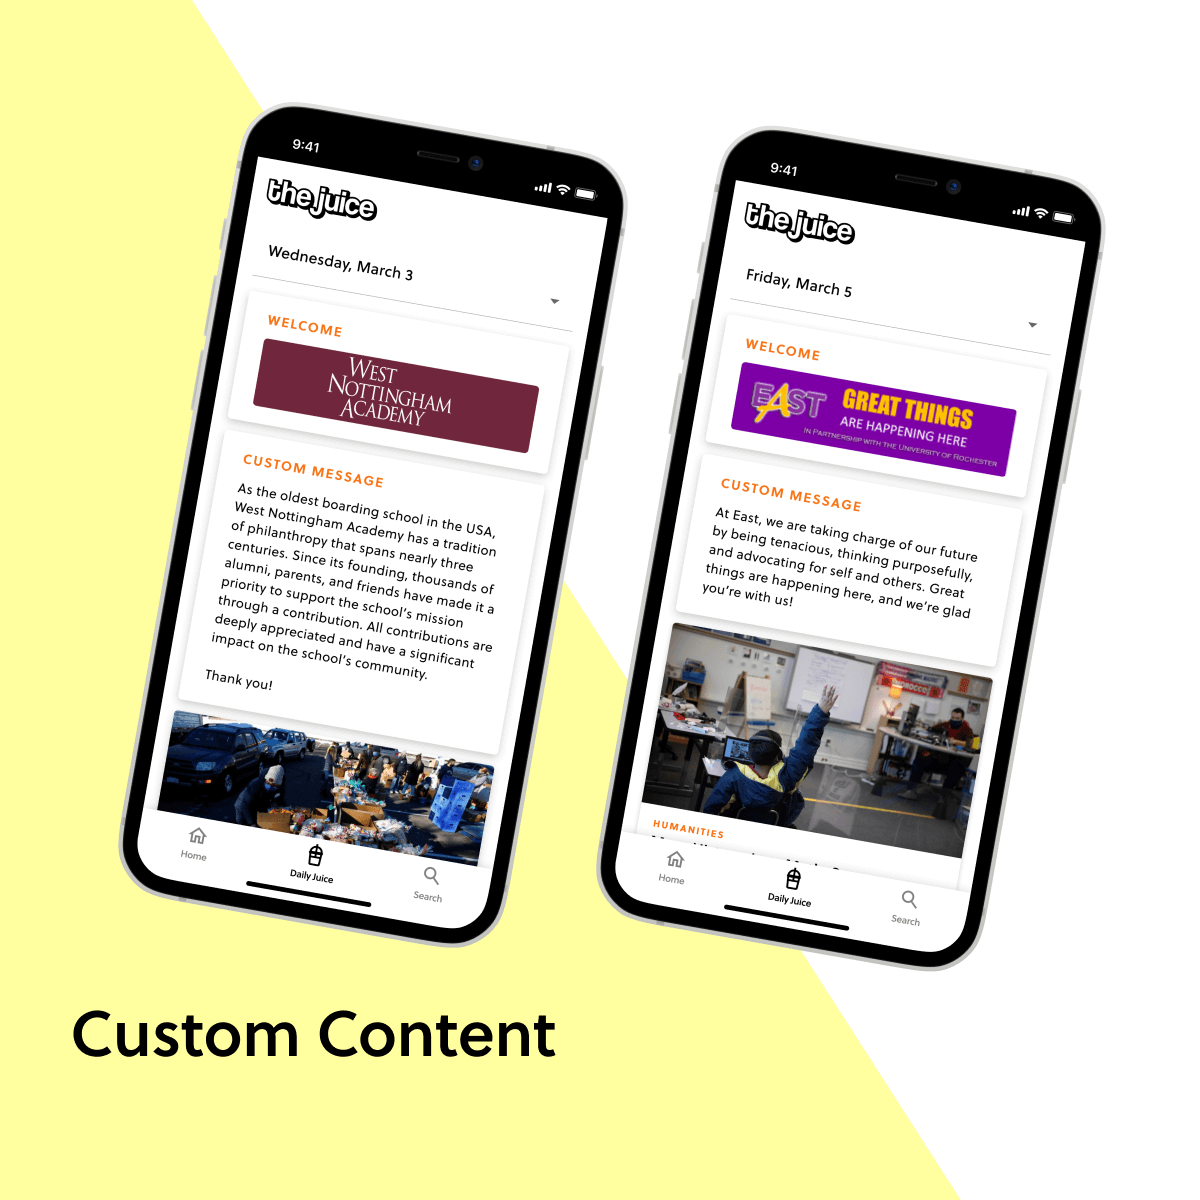 Teachers can customize The Juice from their portal. They can announce upcoming events, celebrate achievements, add unique content, and even make money by selling sponsorships to local businesses.